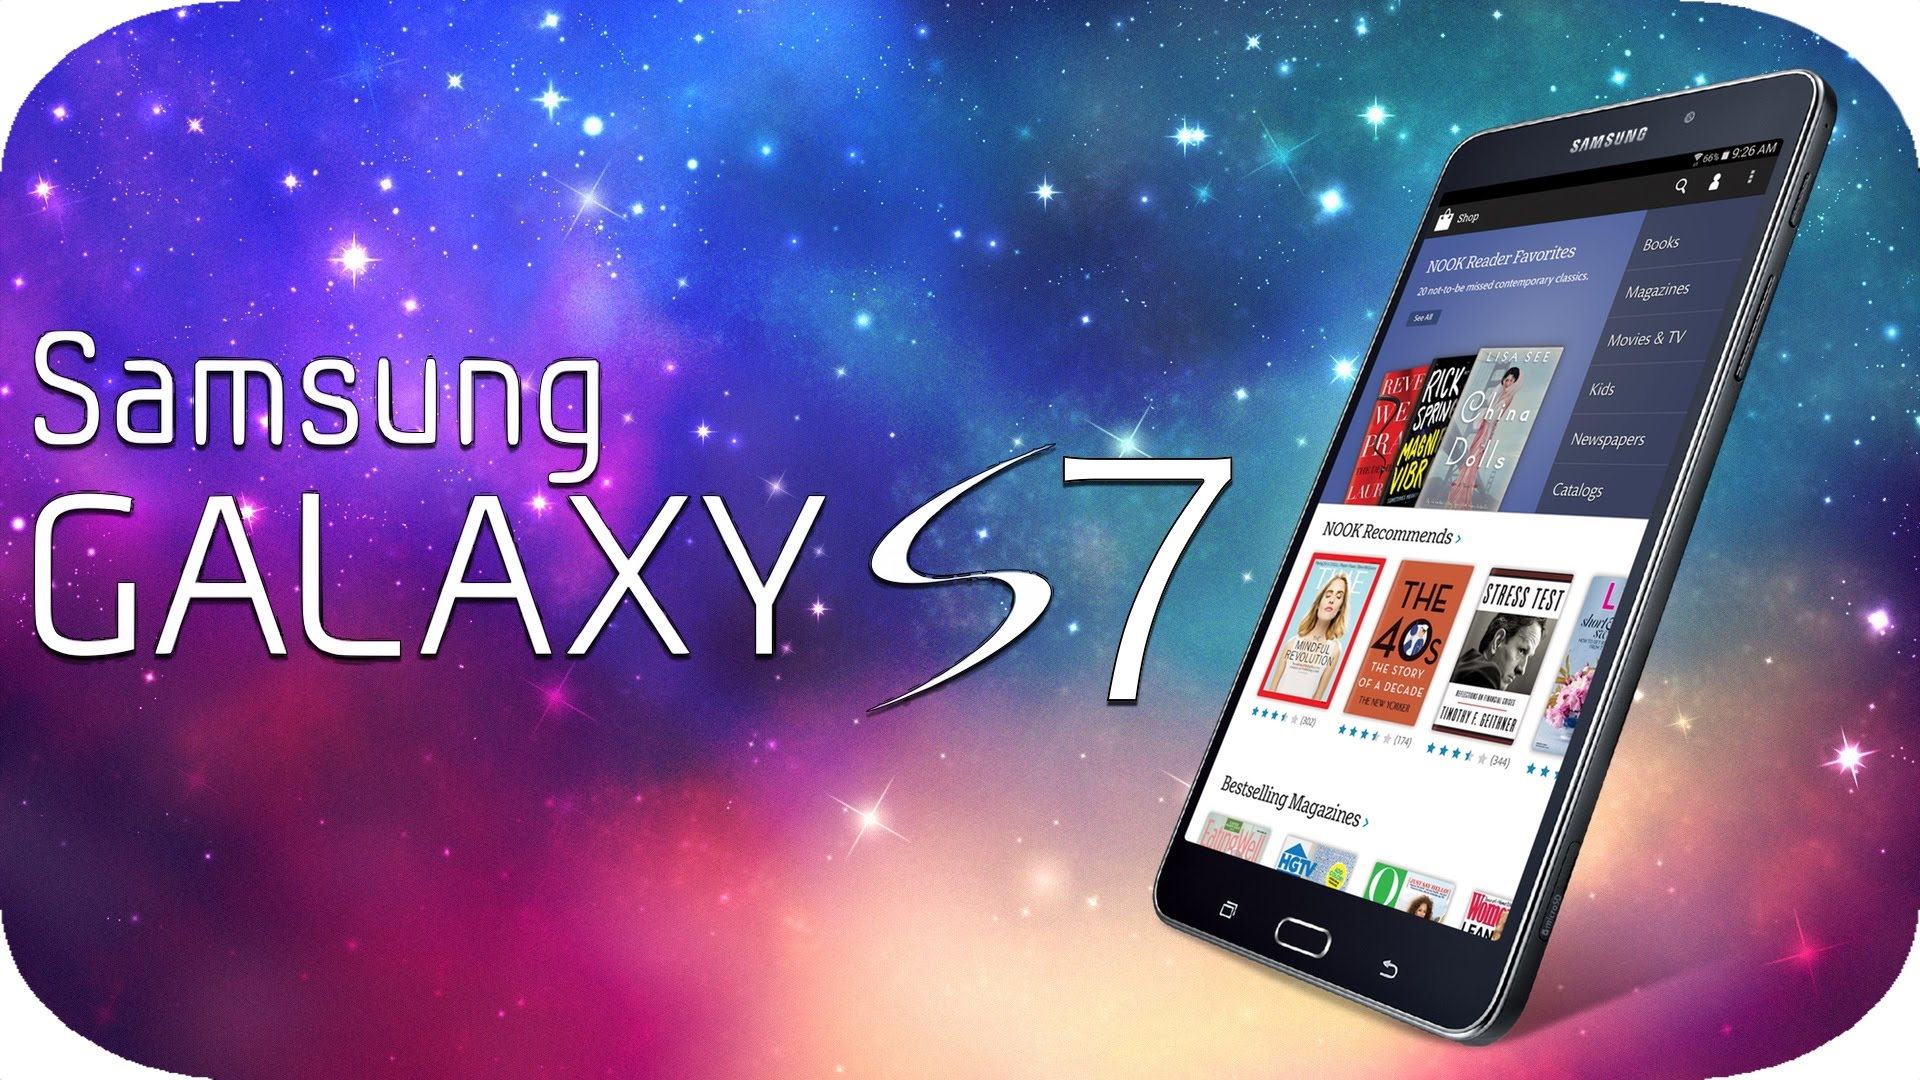 how to get calendar from samsung s3 to samsung s5